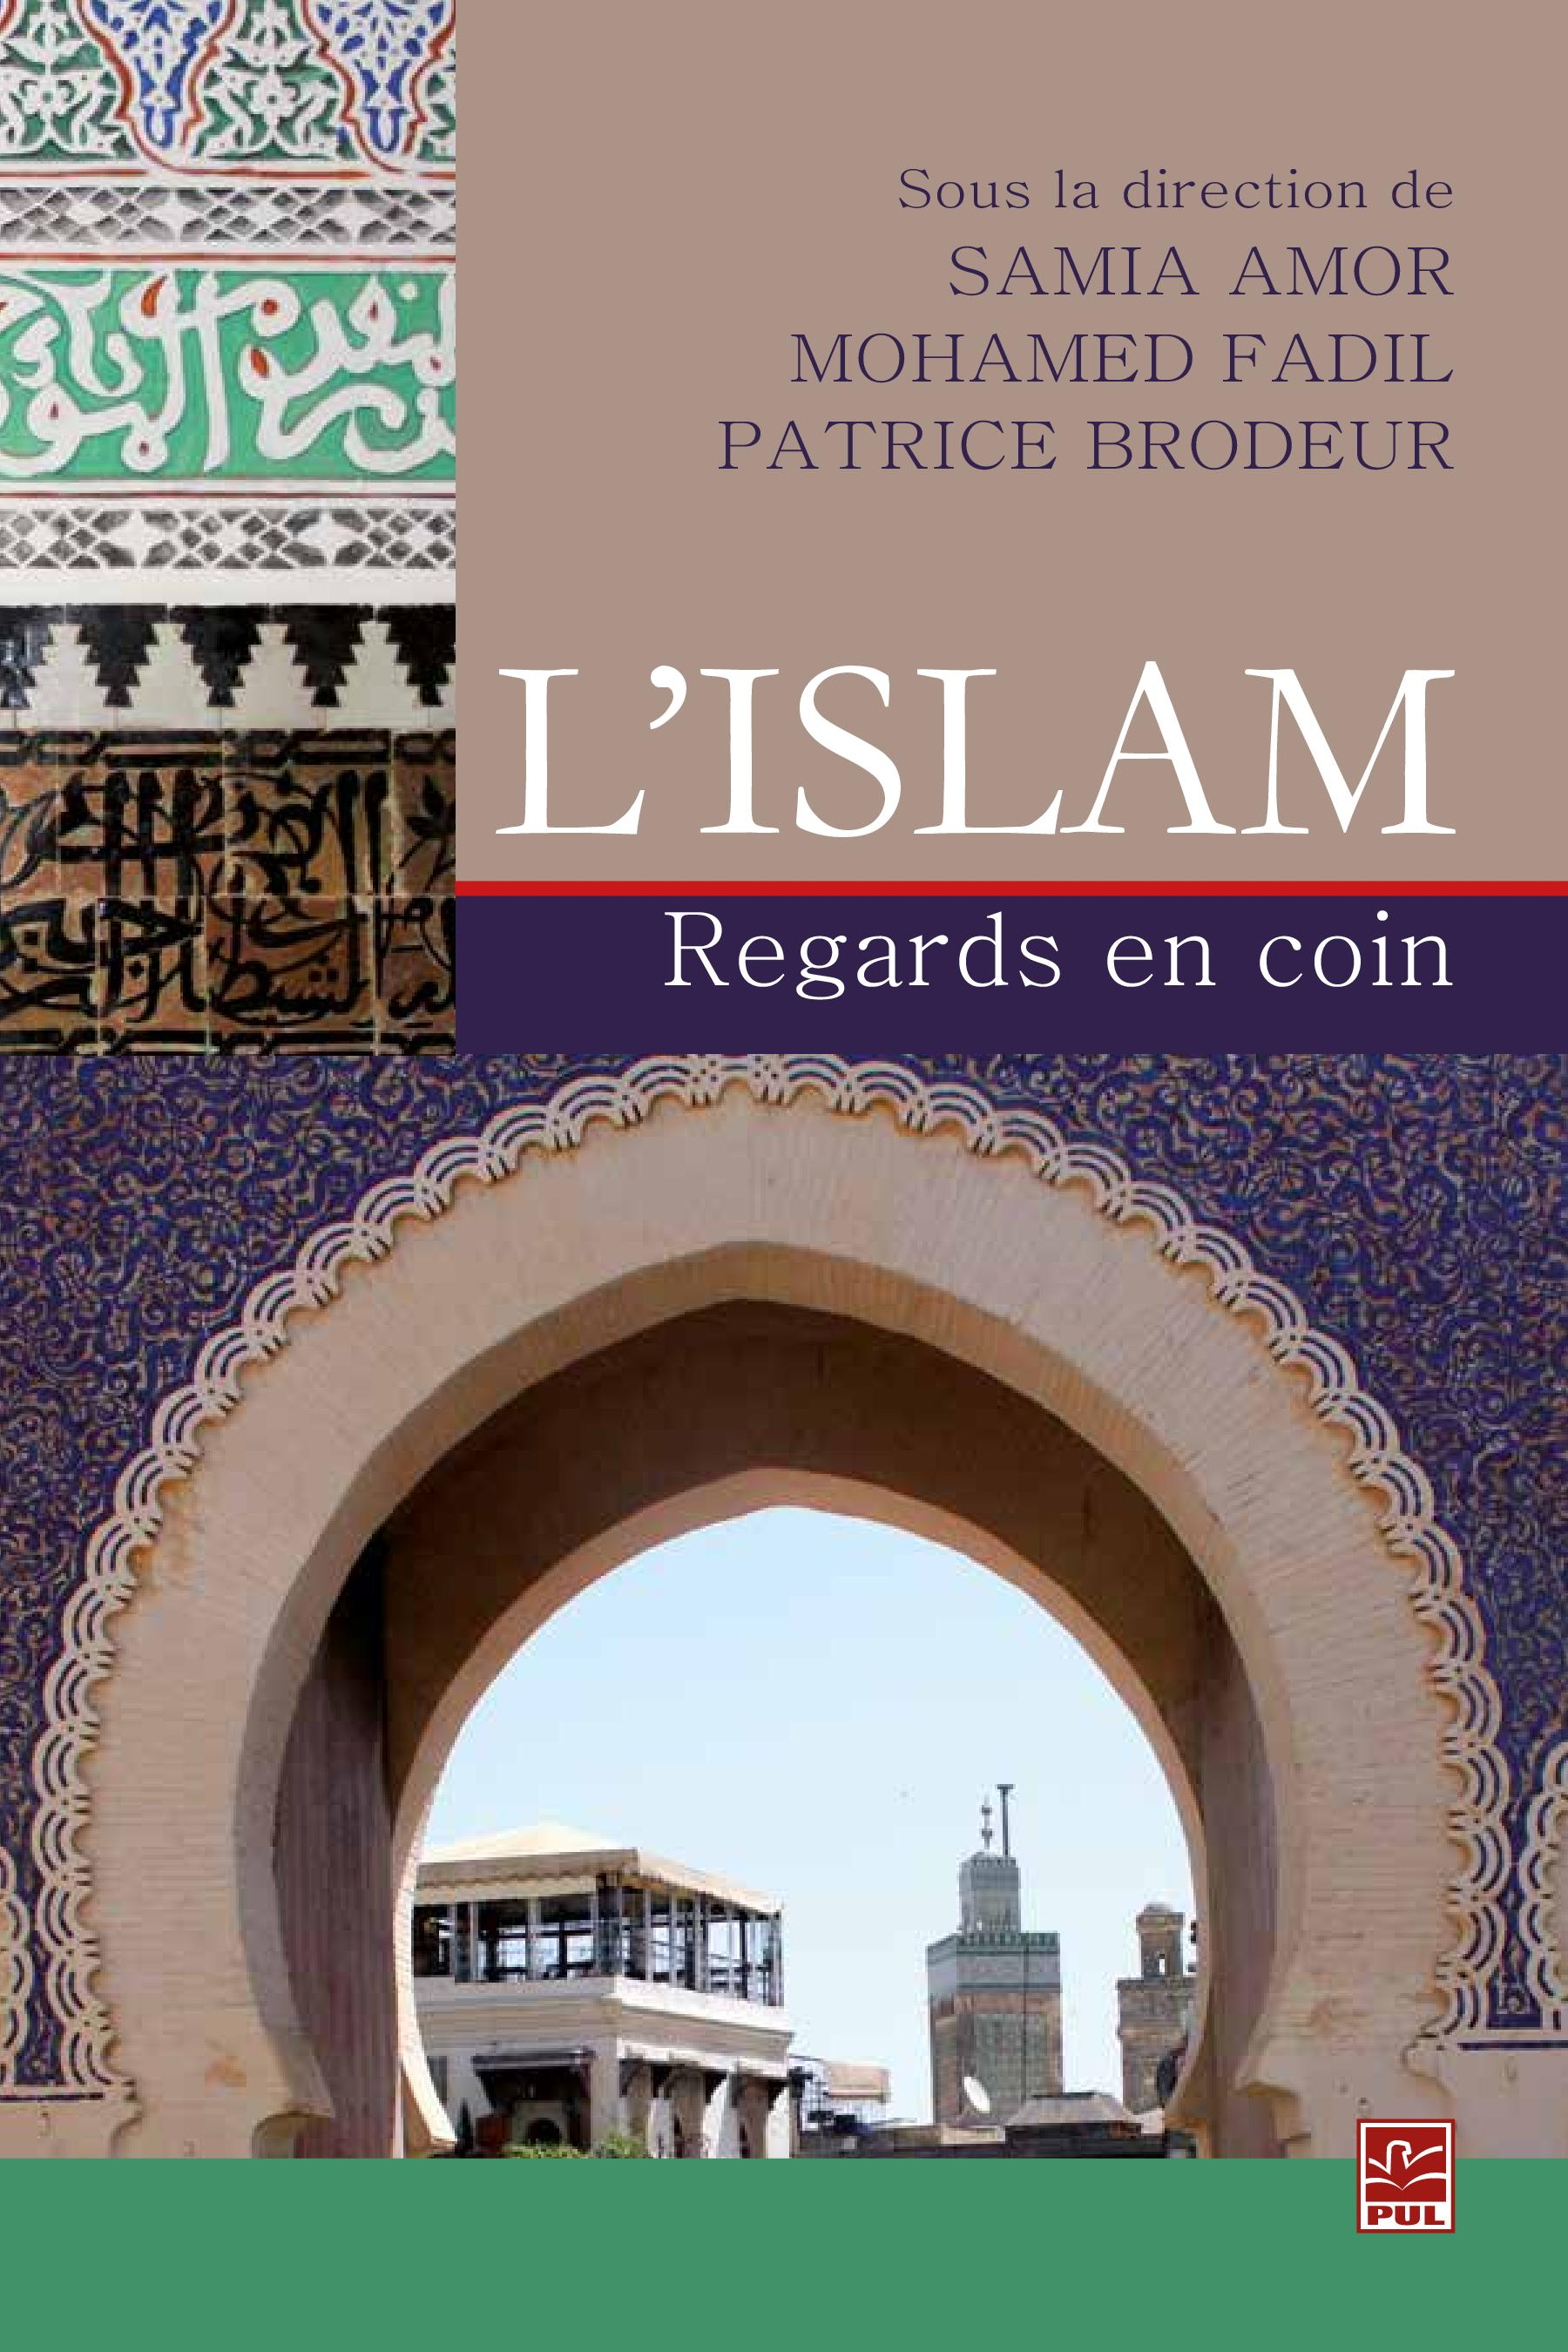 Vignette du livre L'Islam: Regards en coin